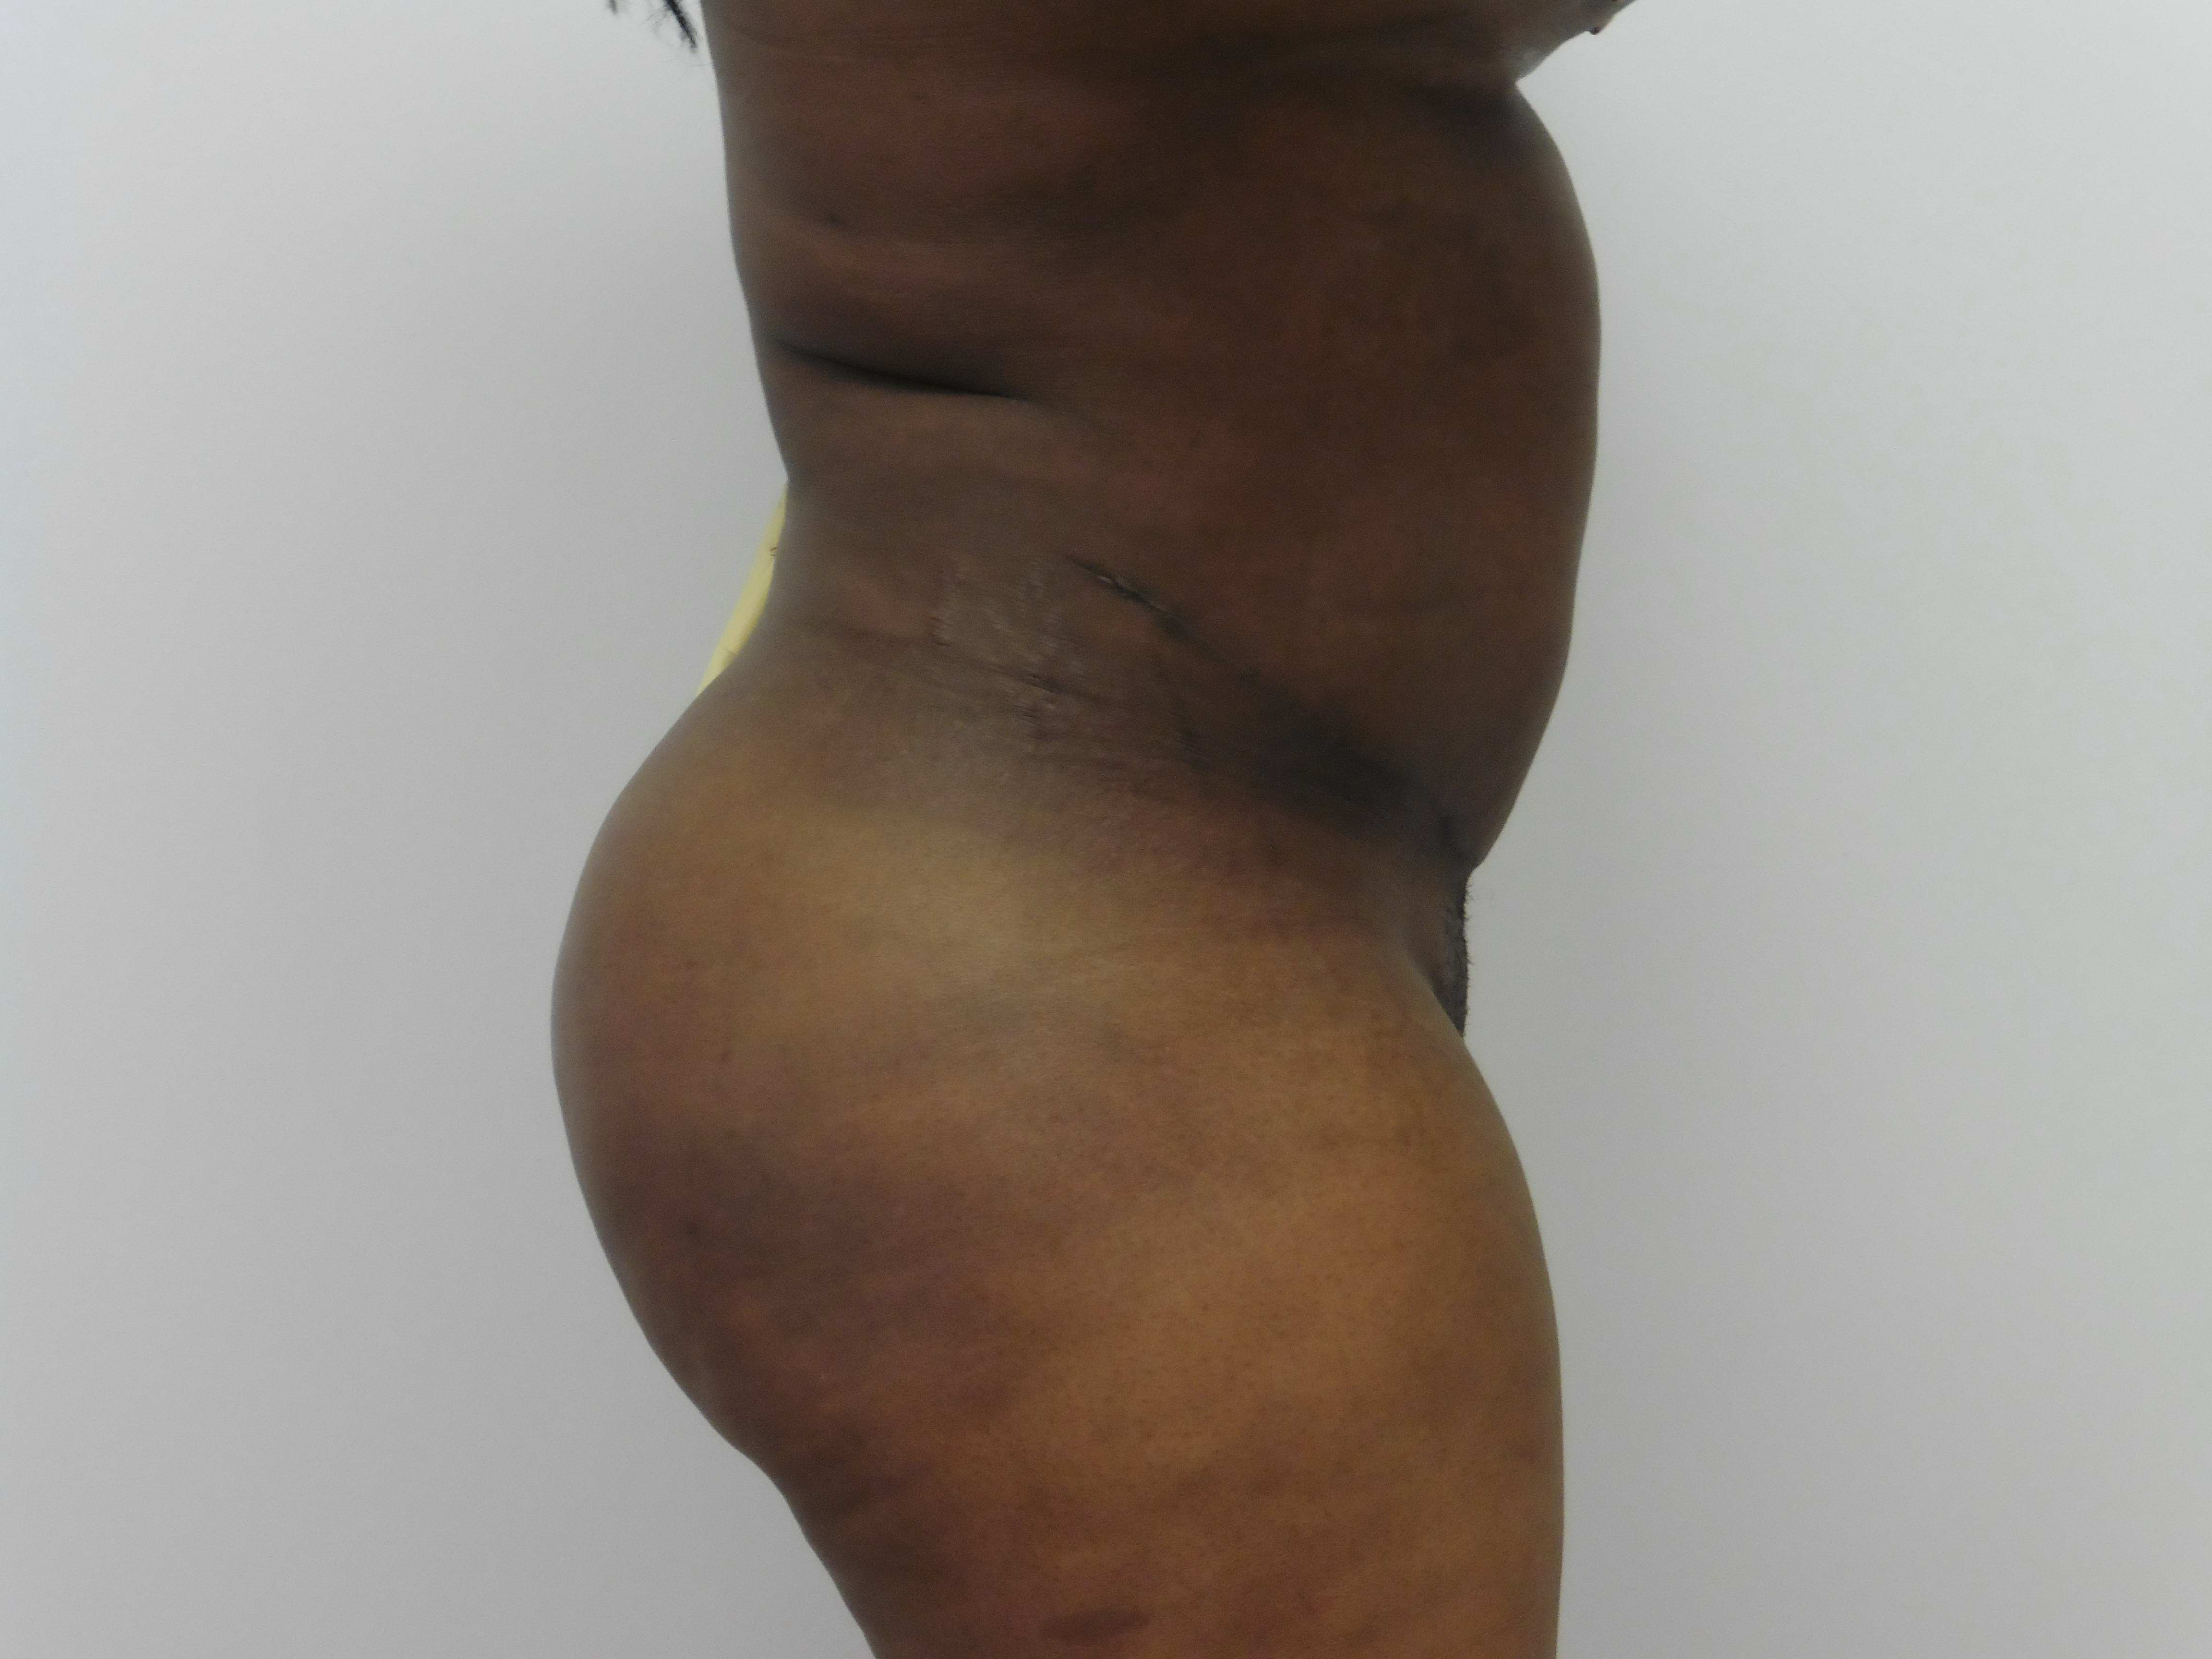 Plastic Surgery For Thighs Before And After photo - 1